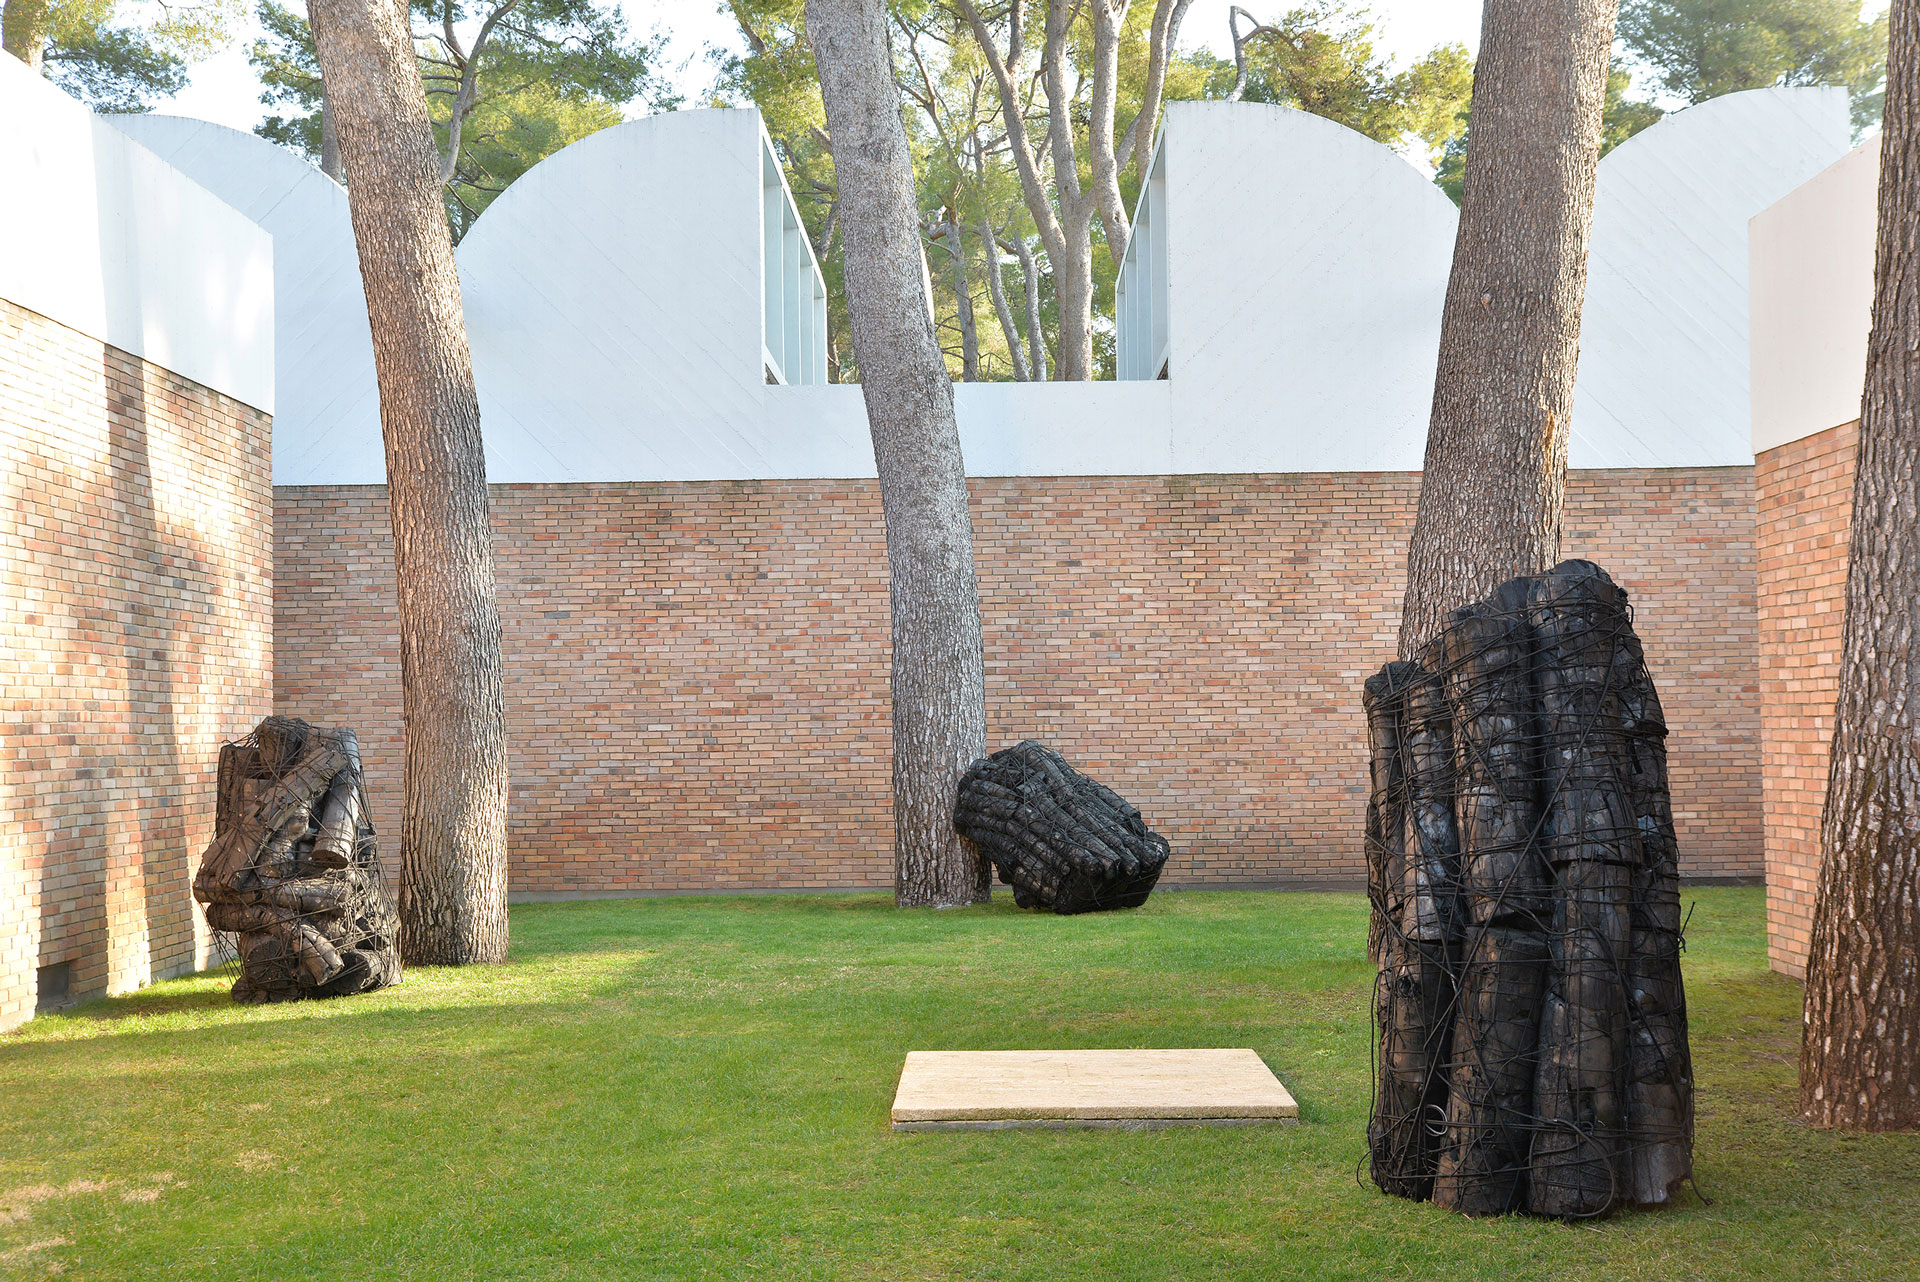 Lee Bae, Plus de lumière. Exhibition view at Fondation Maeght. Photo by Roland Michaud.